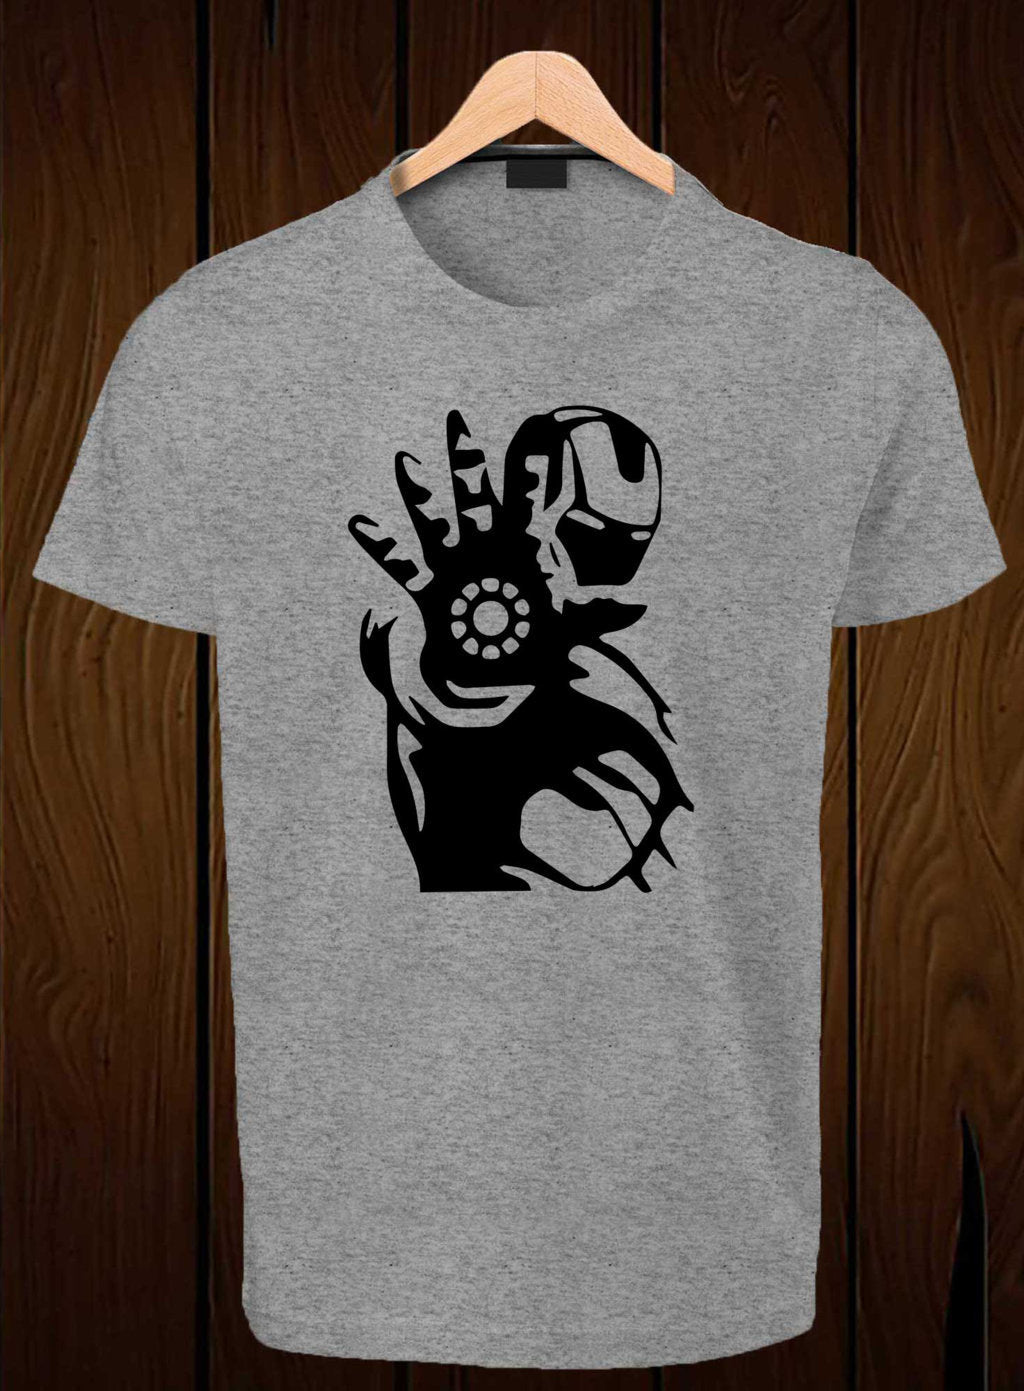 T Shirt Swag Best For Men Design Your Own Logo On Shirts Ironman Red Tees Cool Printed Graphic Grey